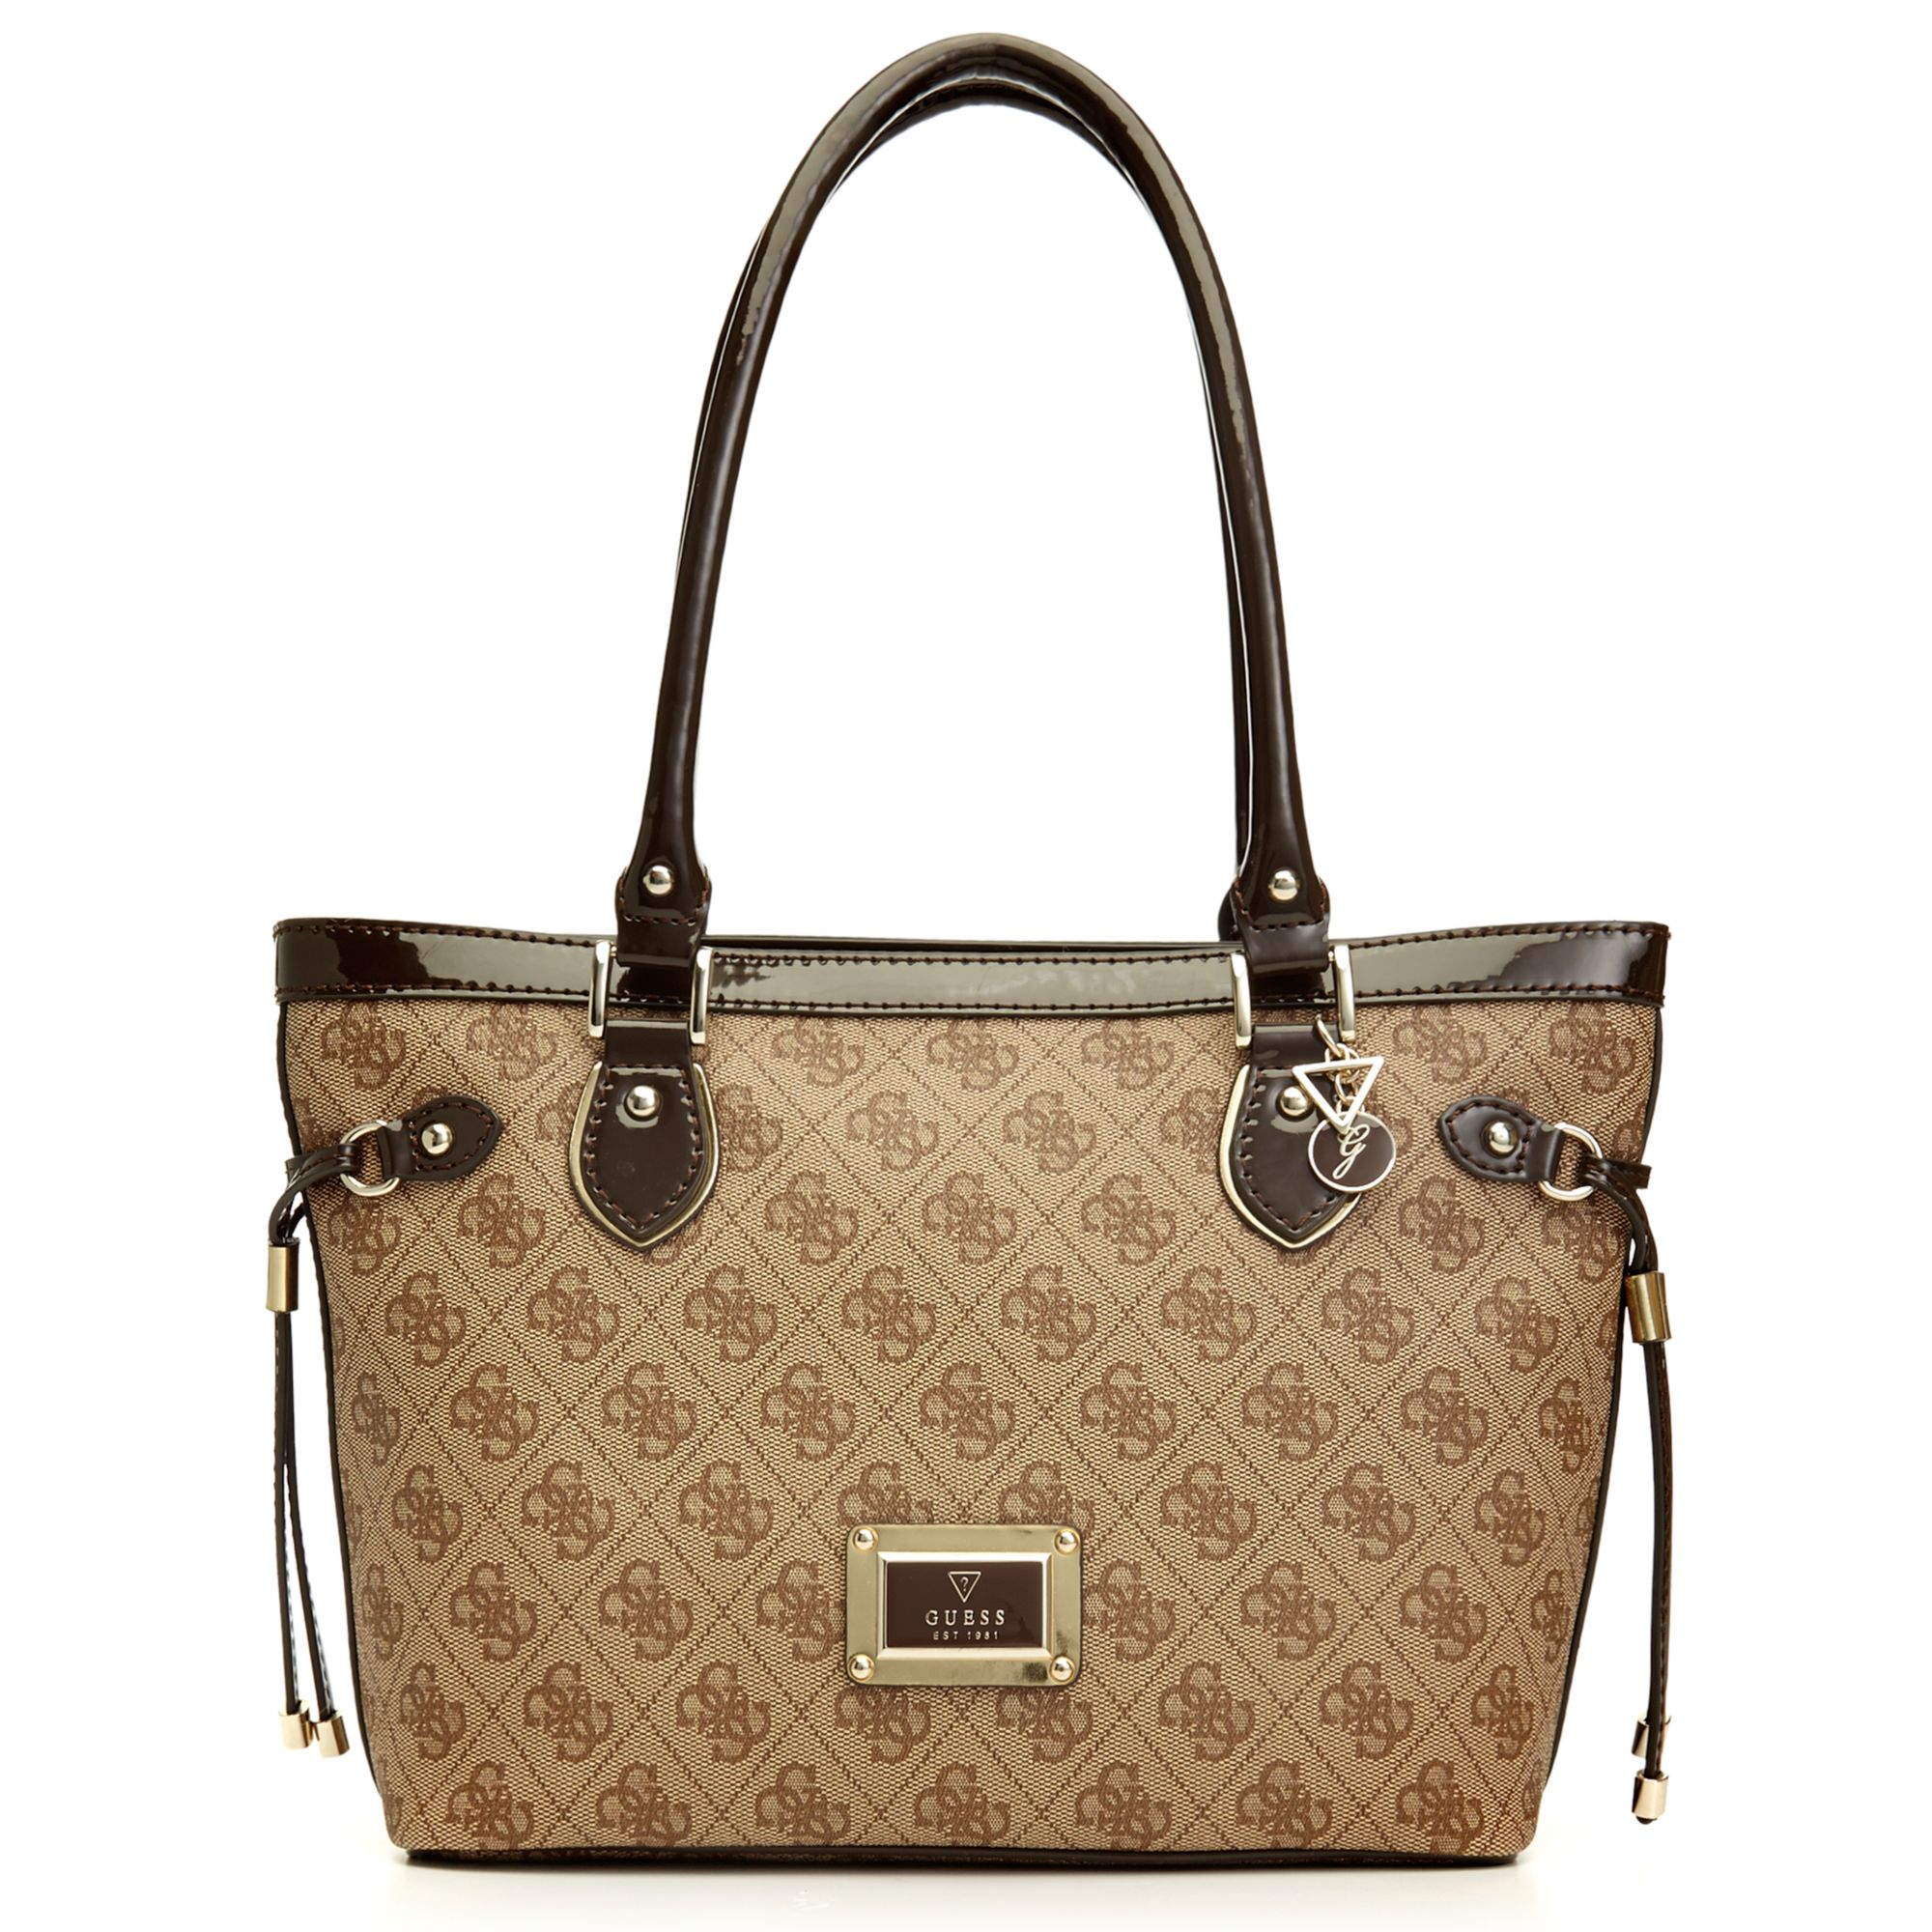 Guess Guess Handbag Reama Small Classic Tote In Brown